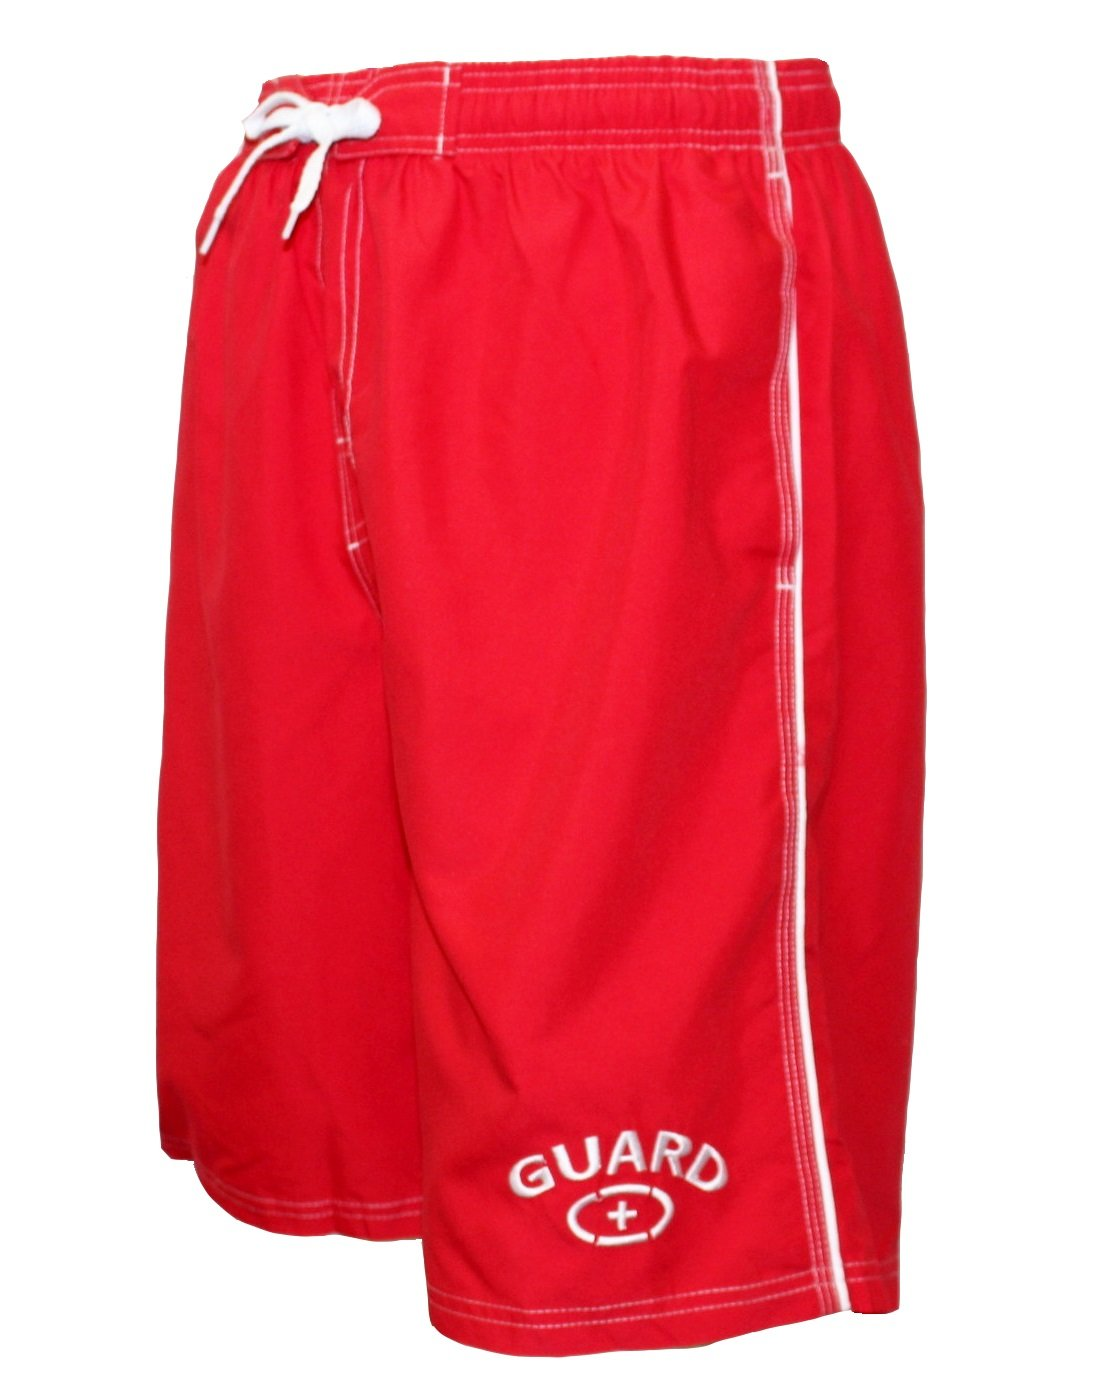 Amazon.com : MENS LIFEGUARD SWIMSUIT : Sports & Outdoors